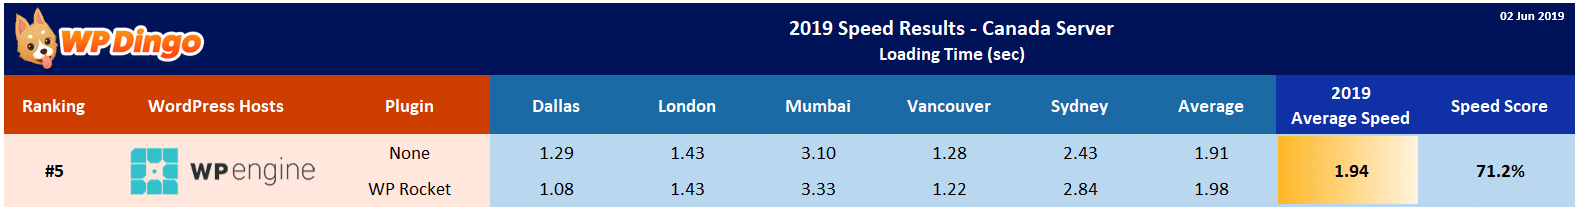 2019 WP Engine Speed Table - Canada Server